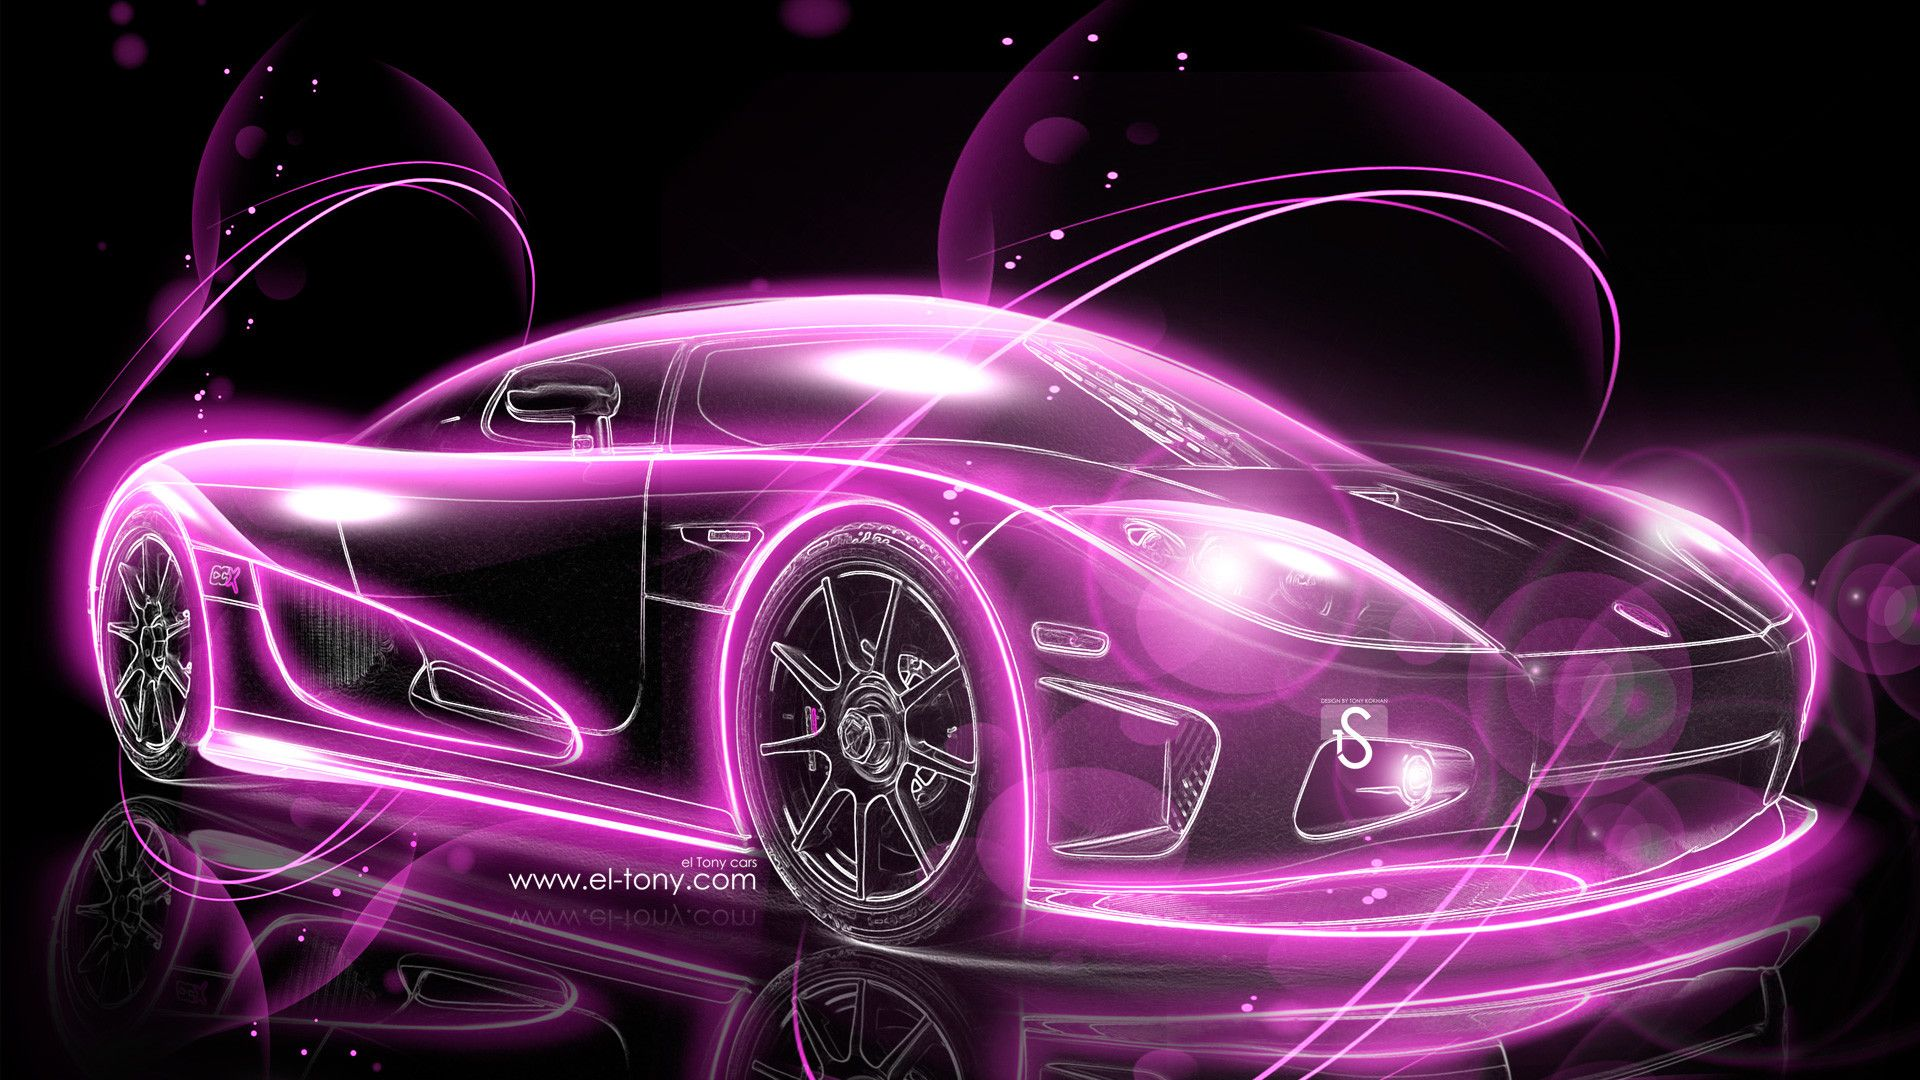 1920x1080 Great Pink Car Picture Logo Wallpaper Hd Pink Car